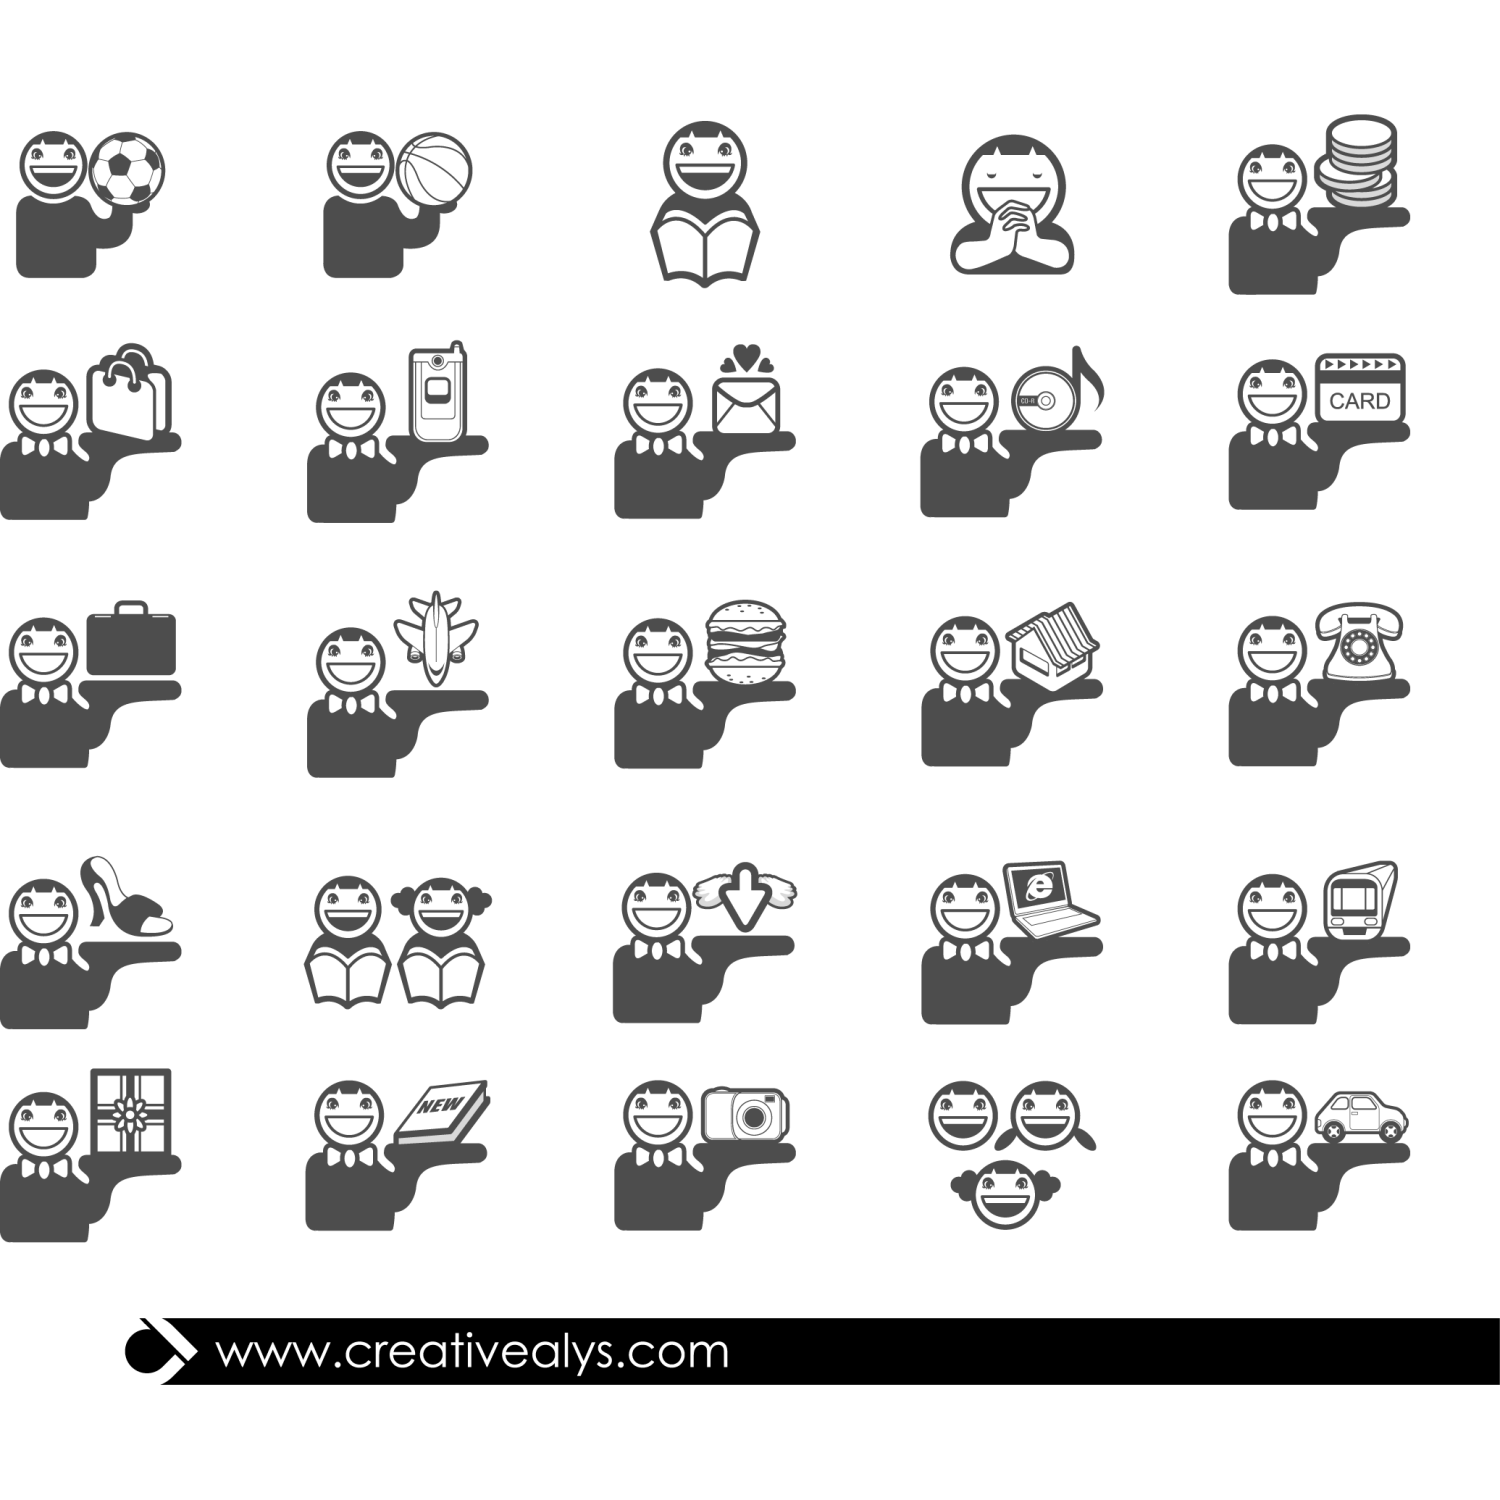 Here is a creative collection of flat person icons in vector